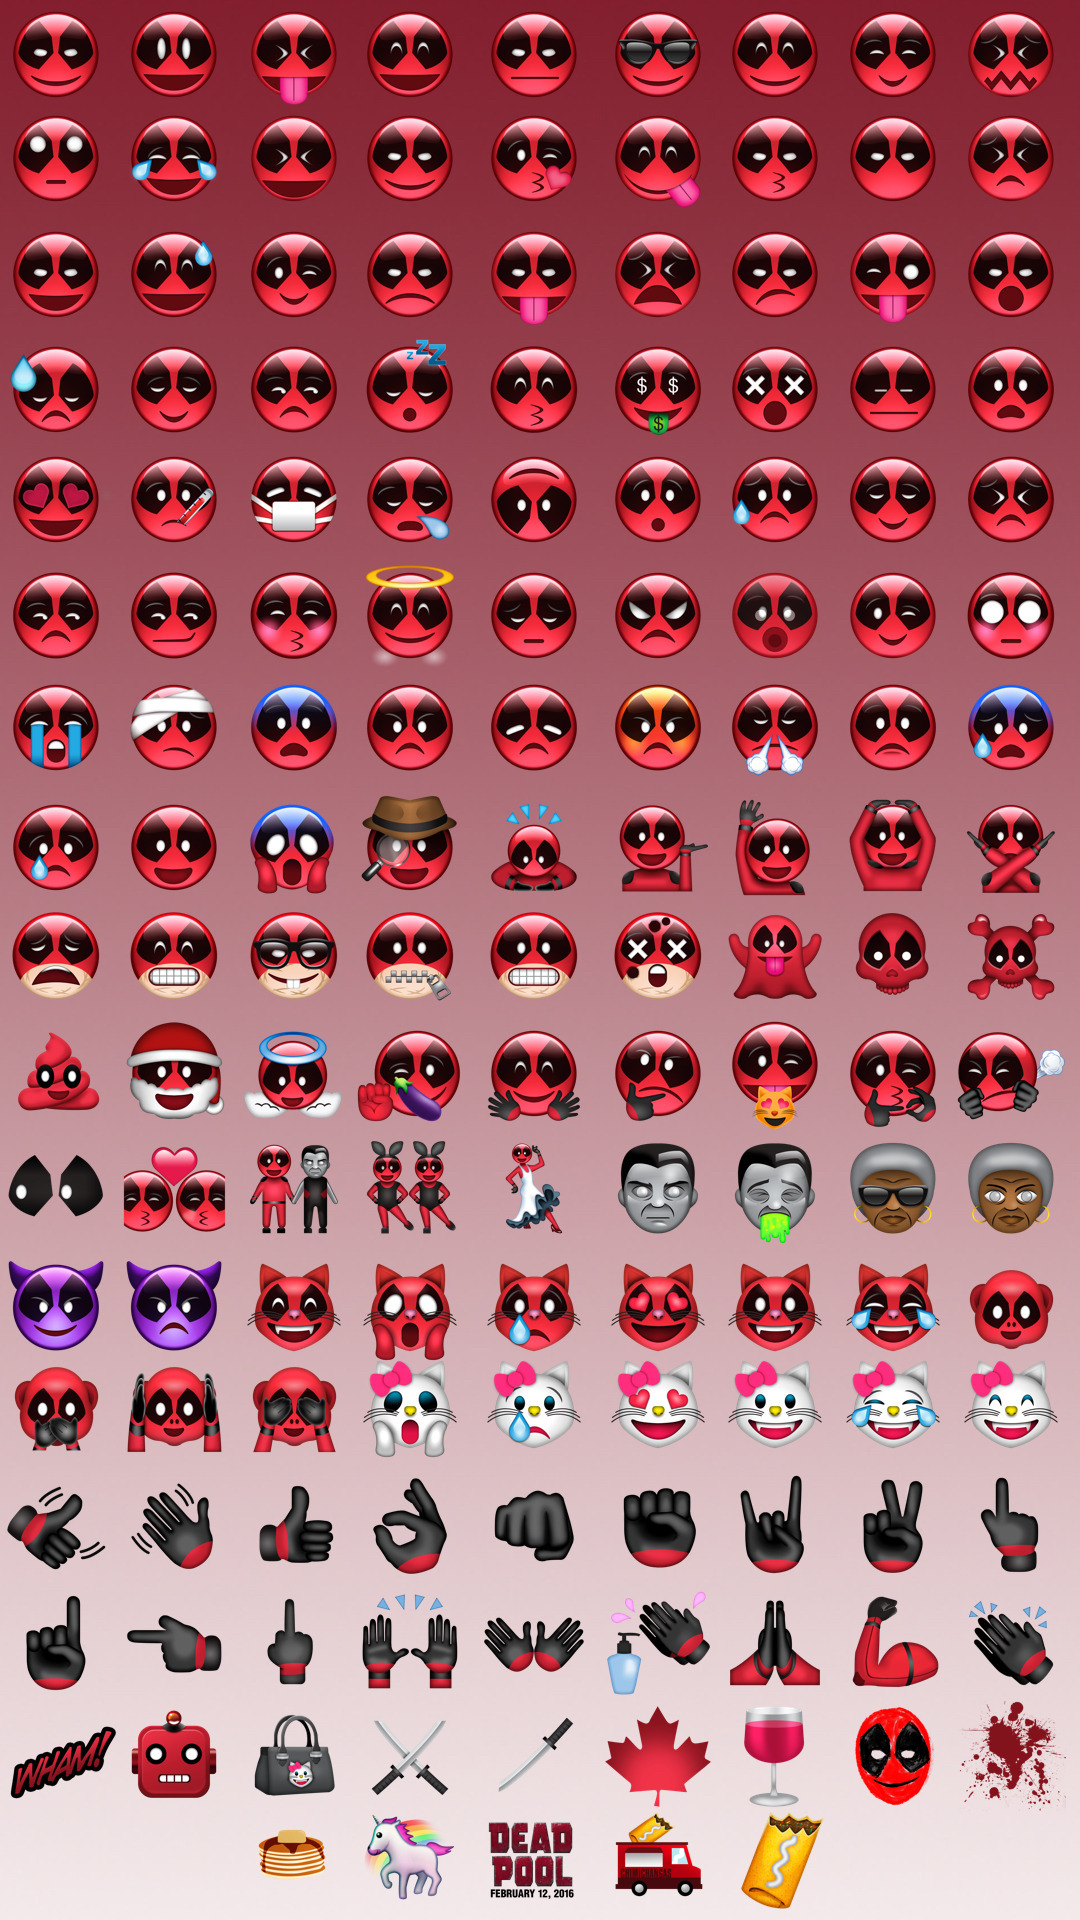 DP_Emojis_Complete_Set